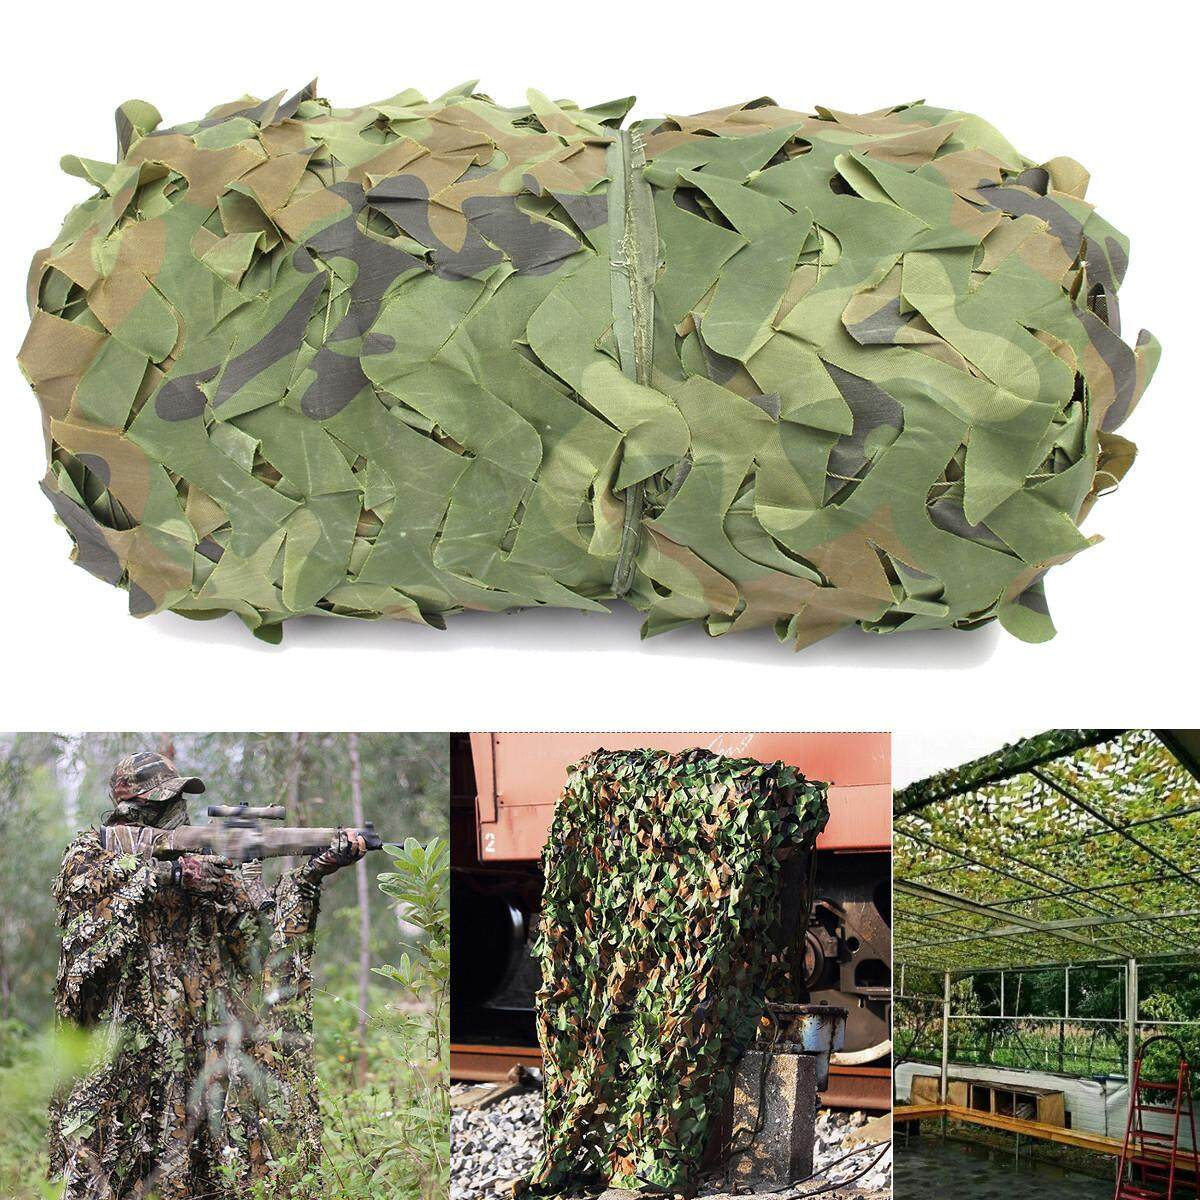 Woodland Camouflage Netting Military Army Camo Hunting Shooting Hide Cover Net By Moonbeam.